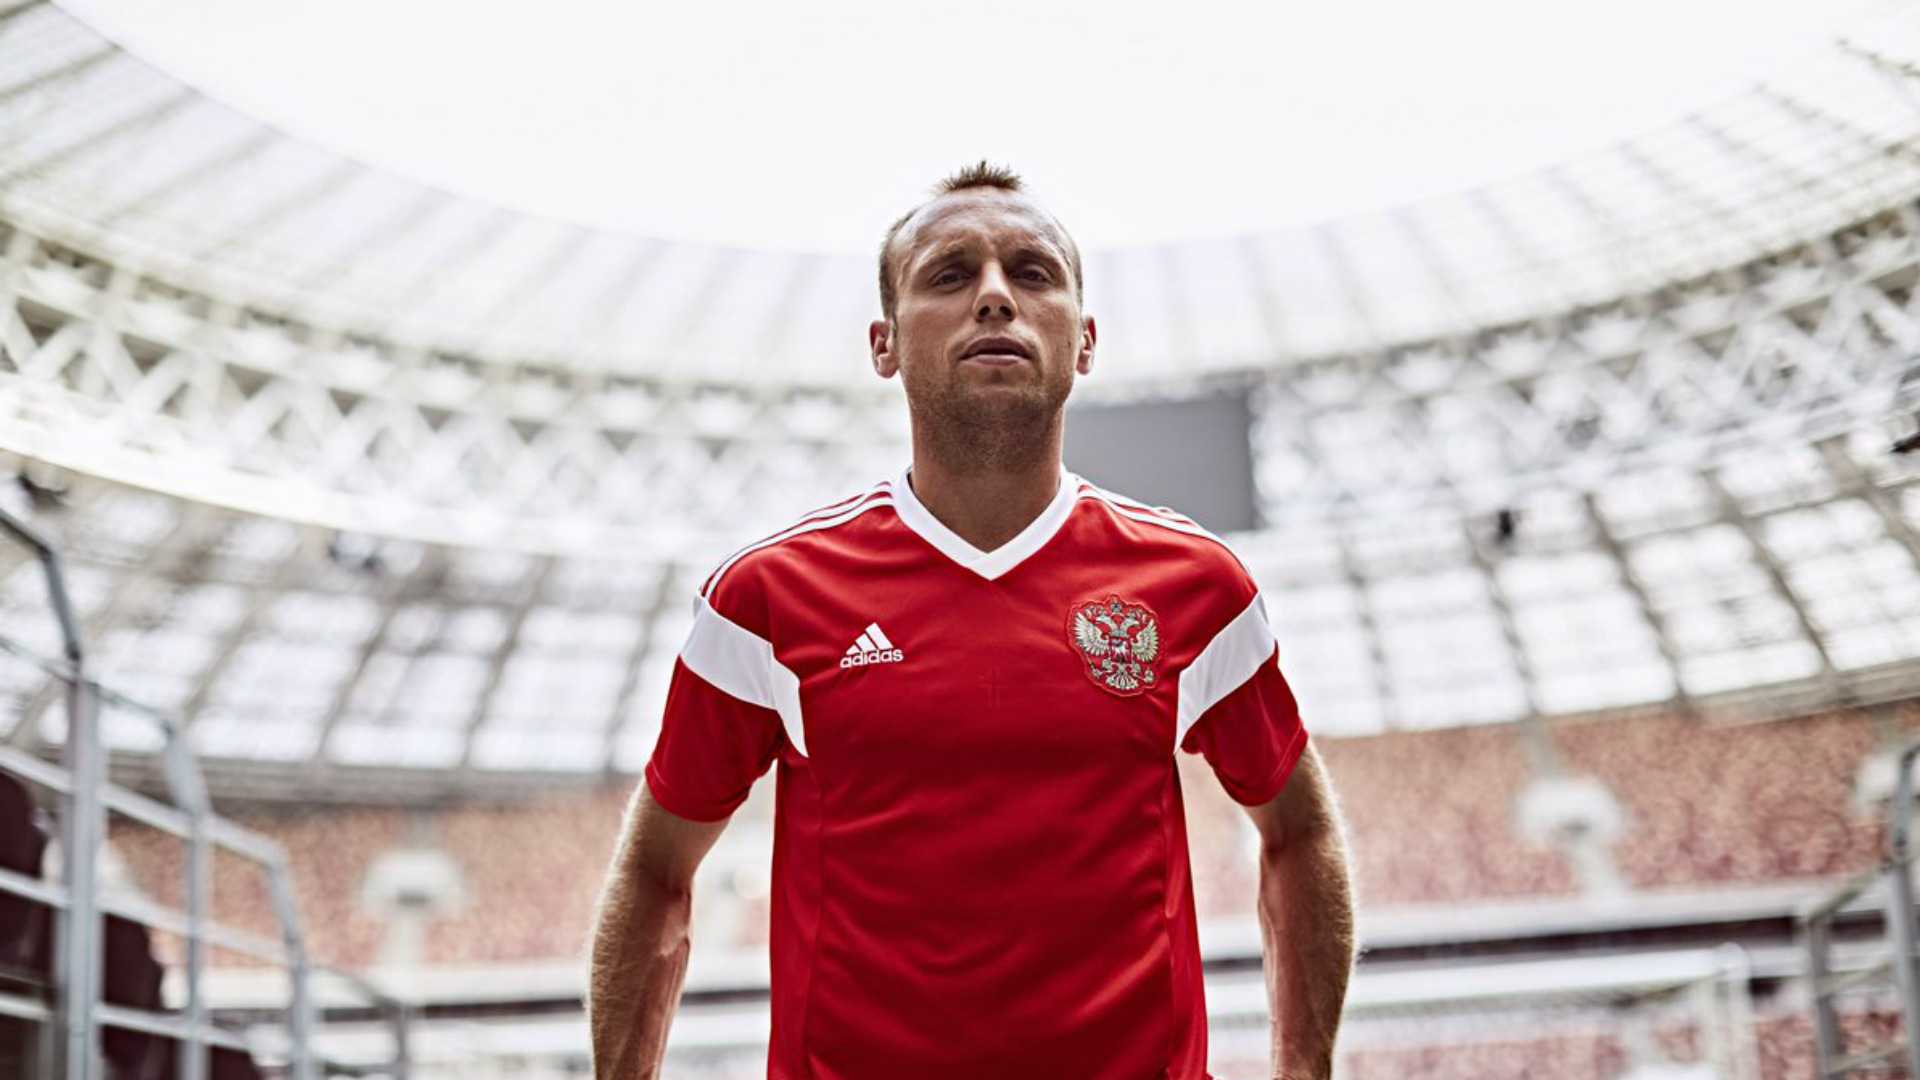 fbf46ac5f World Cup 2018 kit Russia home